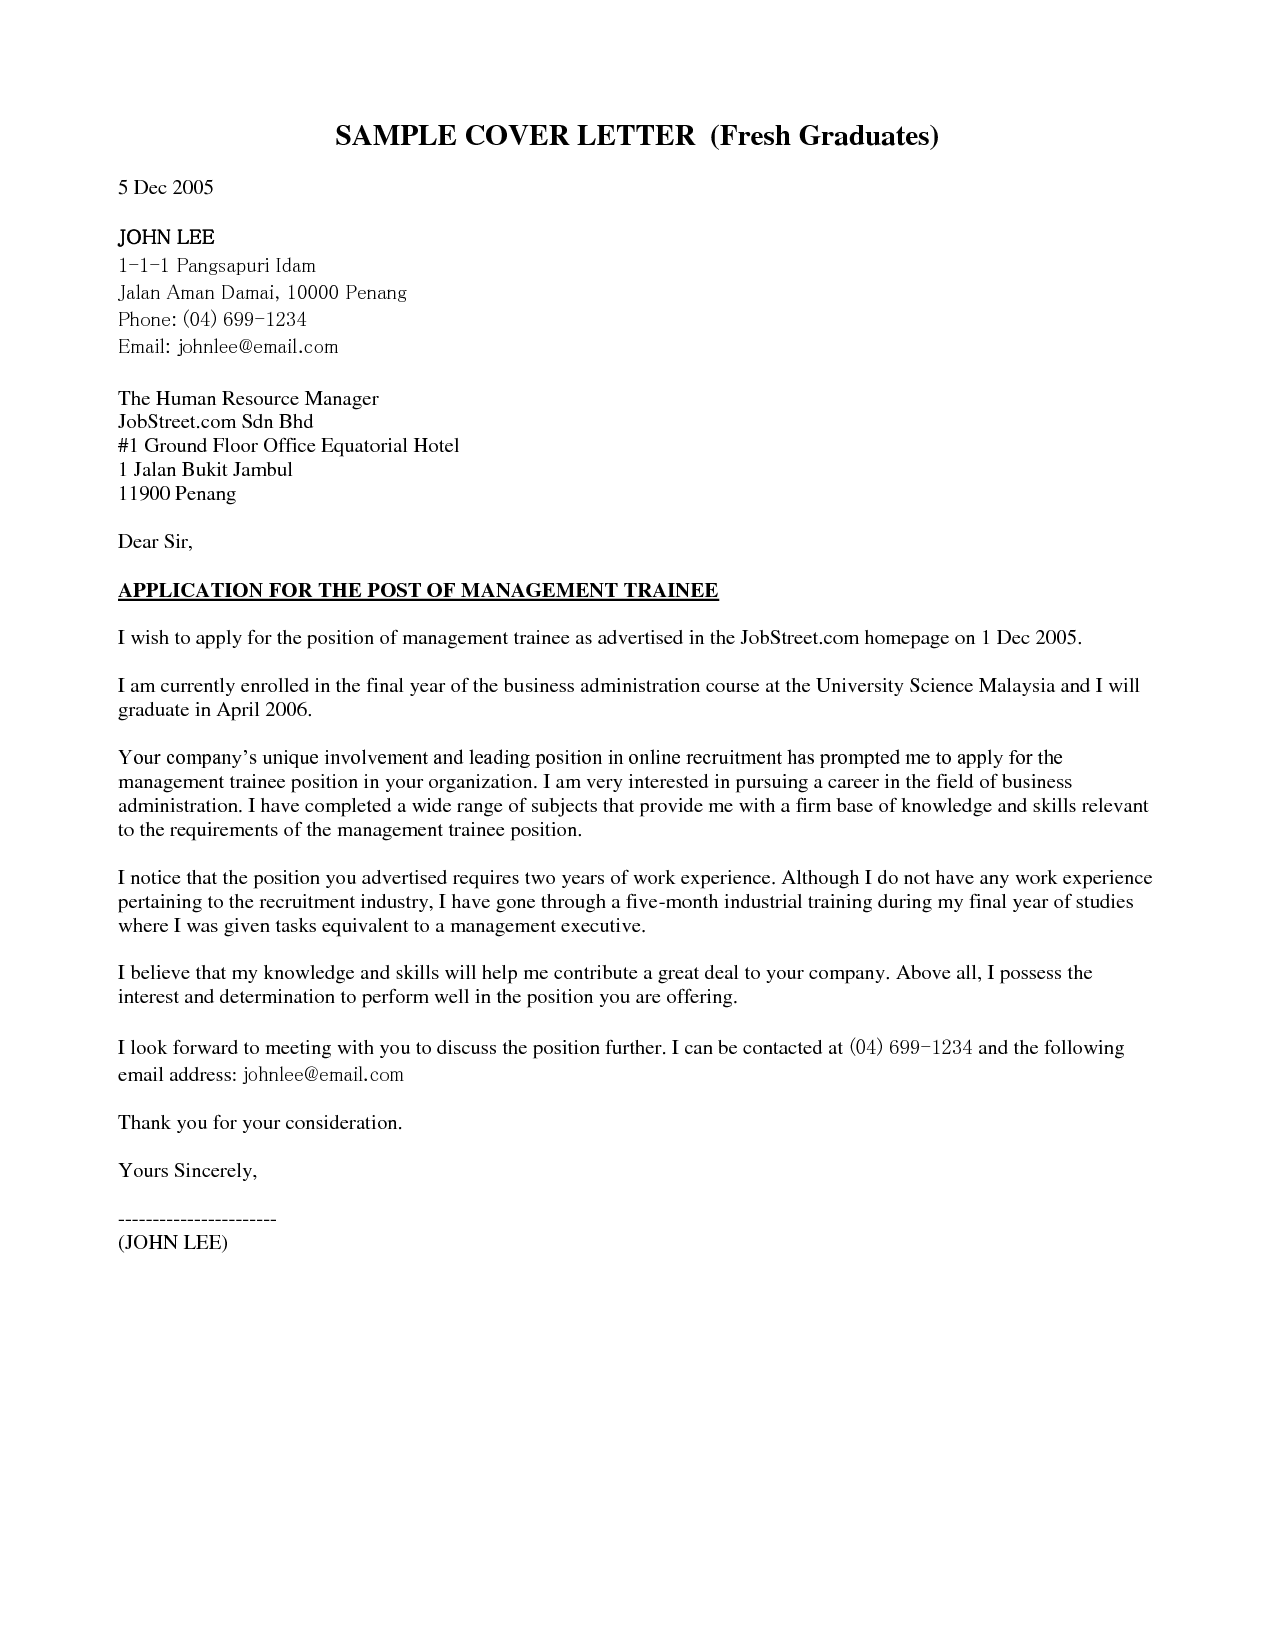 Cover Letter Template Jobstreet Application letters